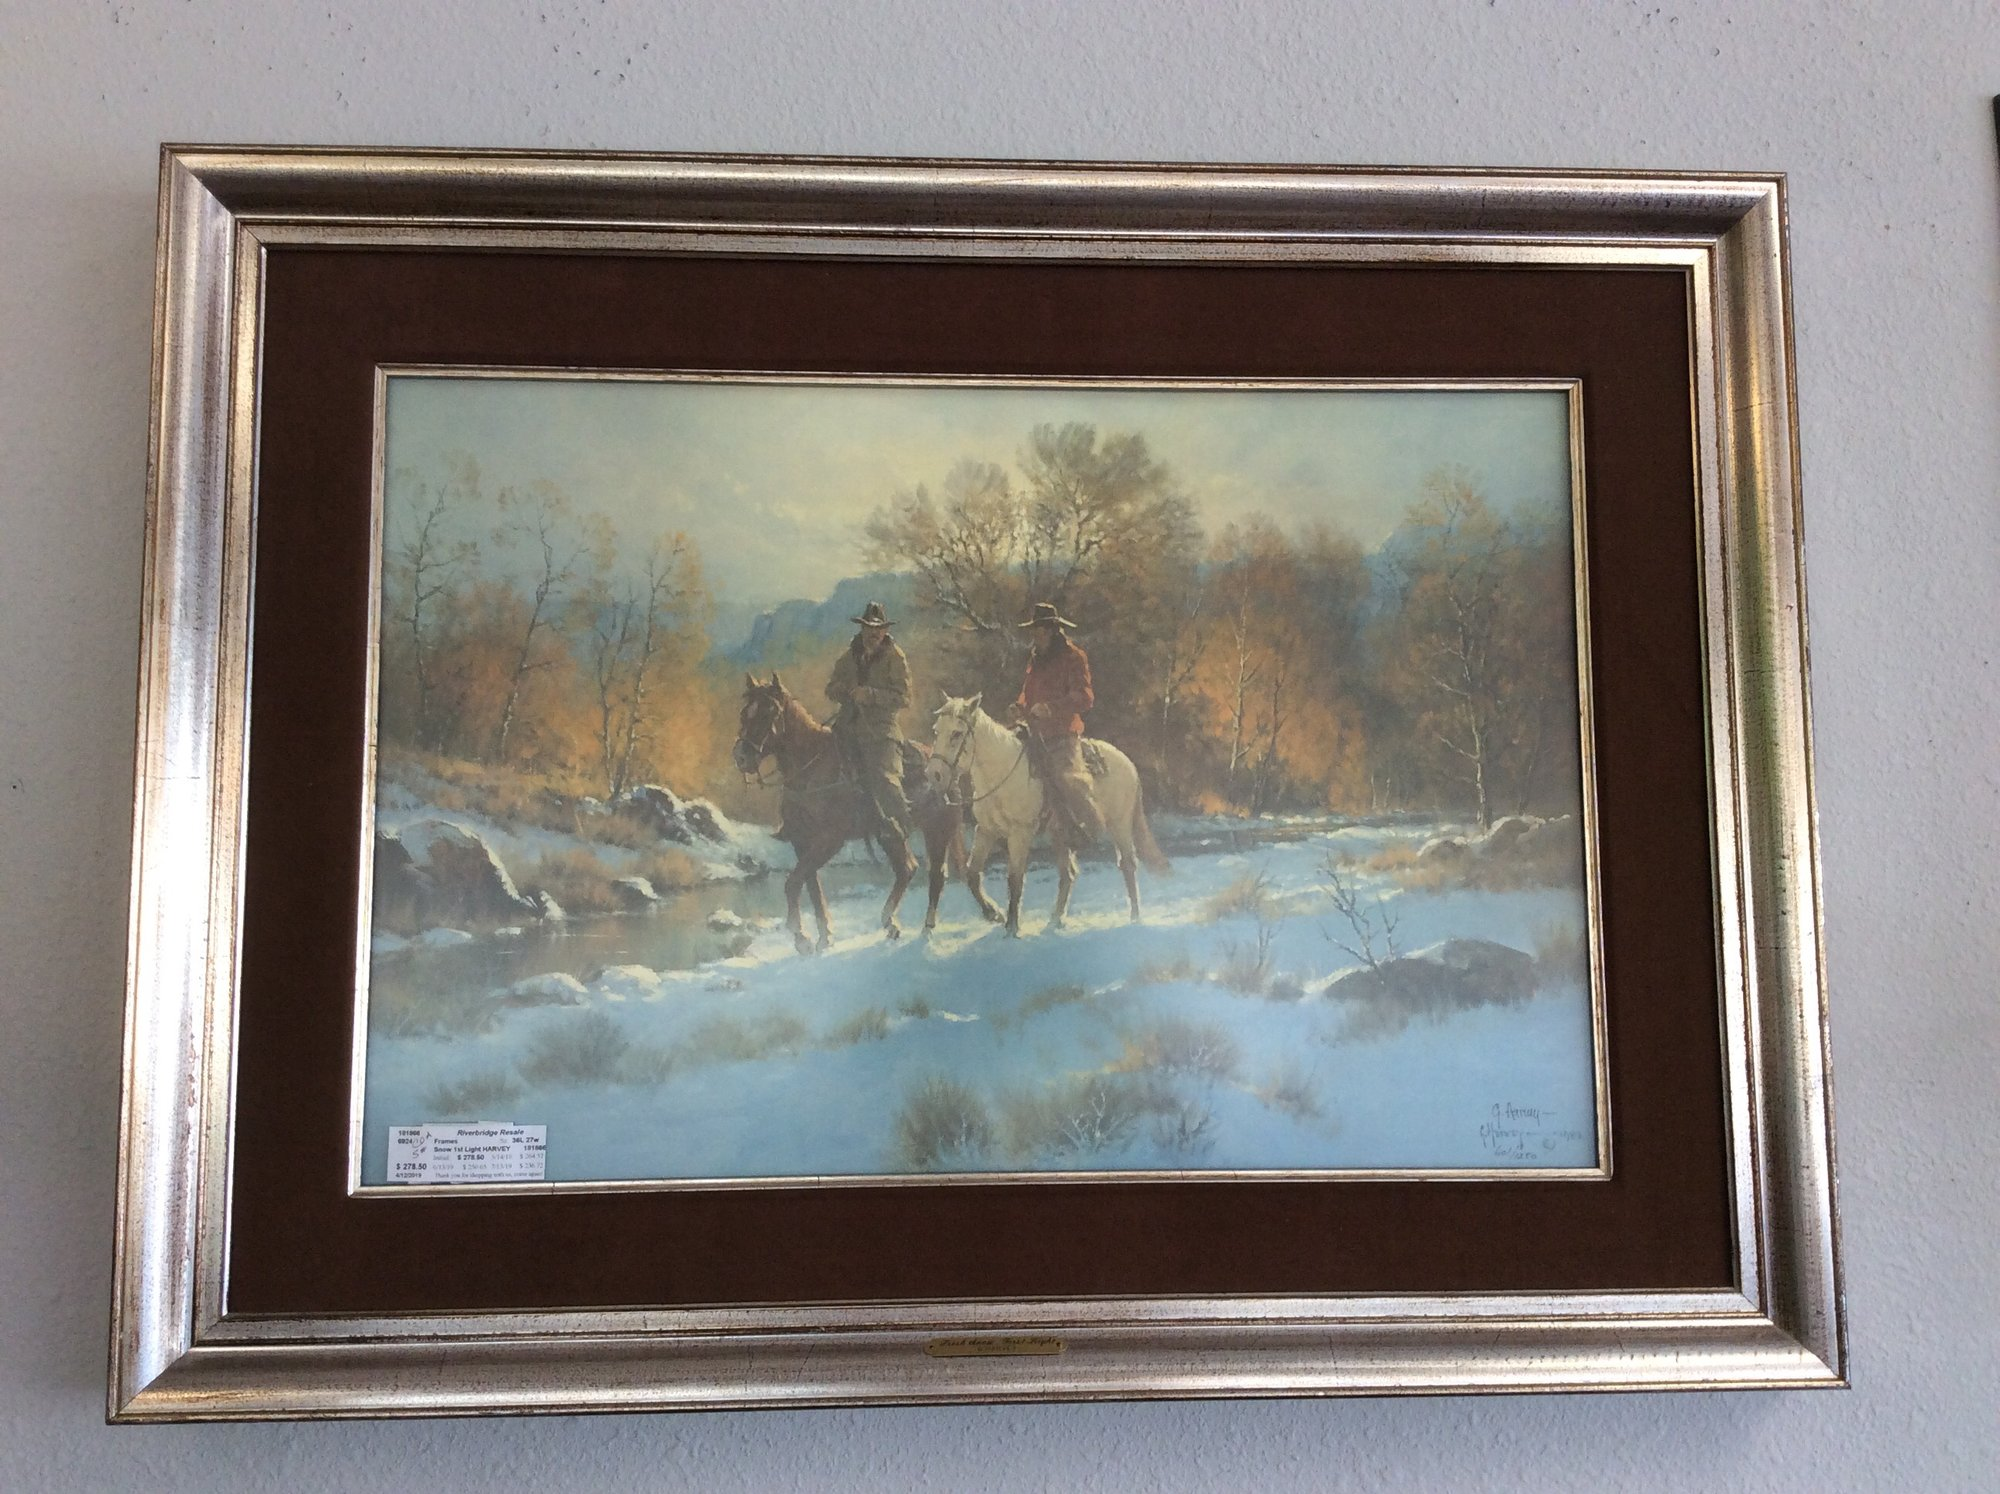 Gorgeous! This picture is matted and  framed, numbered, signed and comes with a Certificate of Authenticity. What a package! G harvey is known for his western scenes and this one is a beauty. Matted in a soft brown suede with a subtle slivery distressed frame, your eye is automatically drawn to the image. Hard to tell if it's dawns early light or a peaceful sunset, either way you need to come in and take a look!